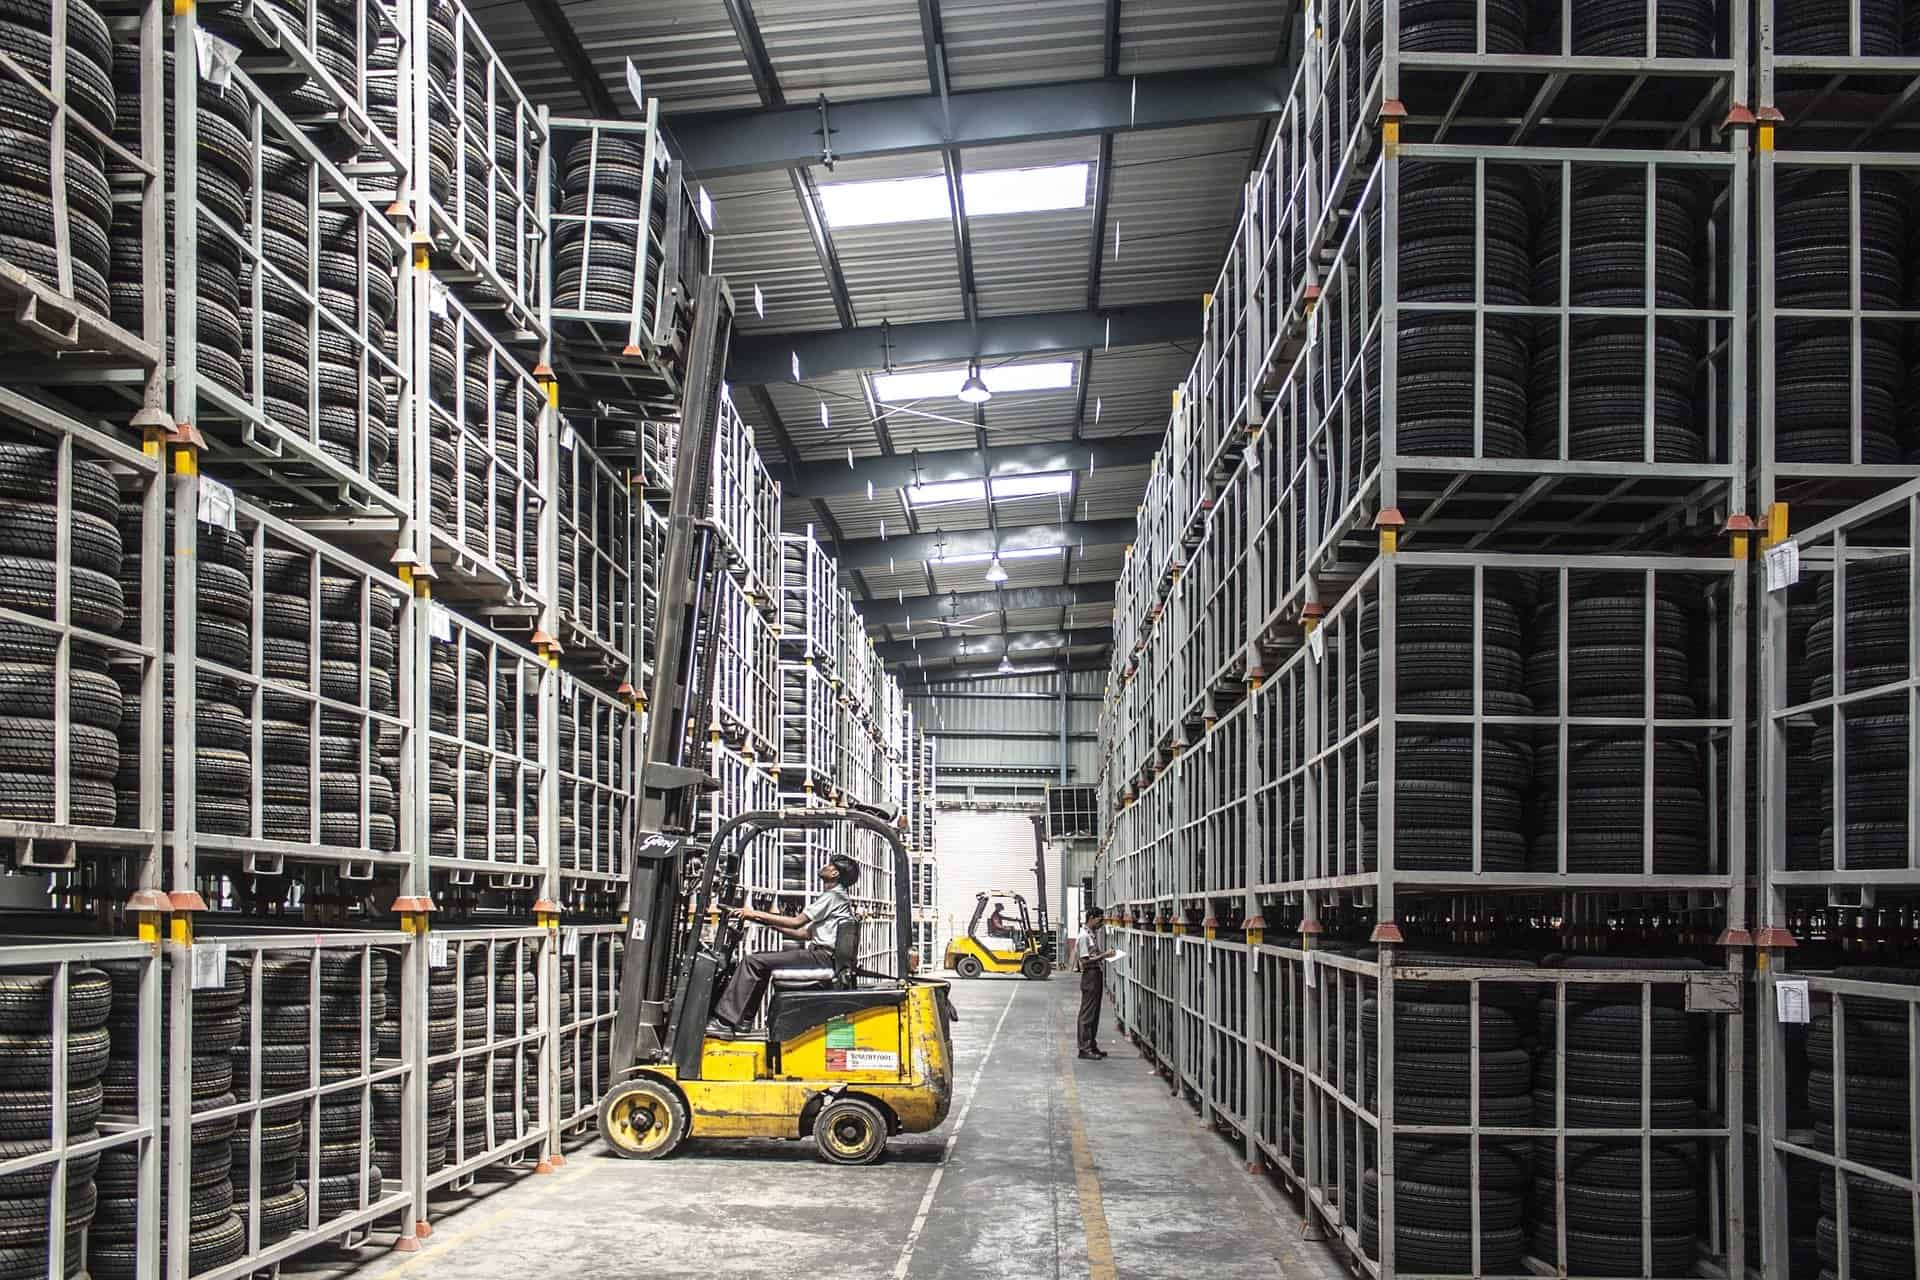 In busines weighted average perpetual inventory systems can provide a real competiive advantage in physical stock control and financial performance.